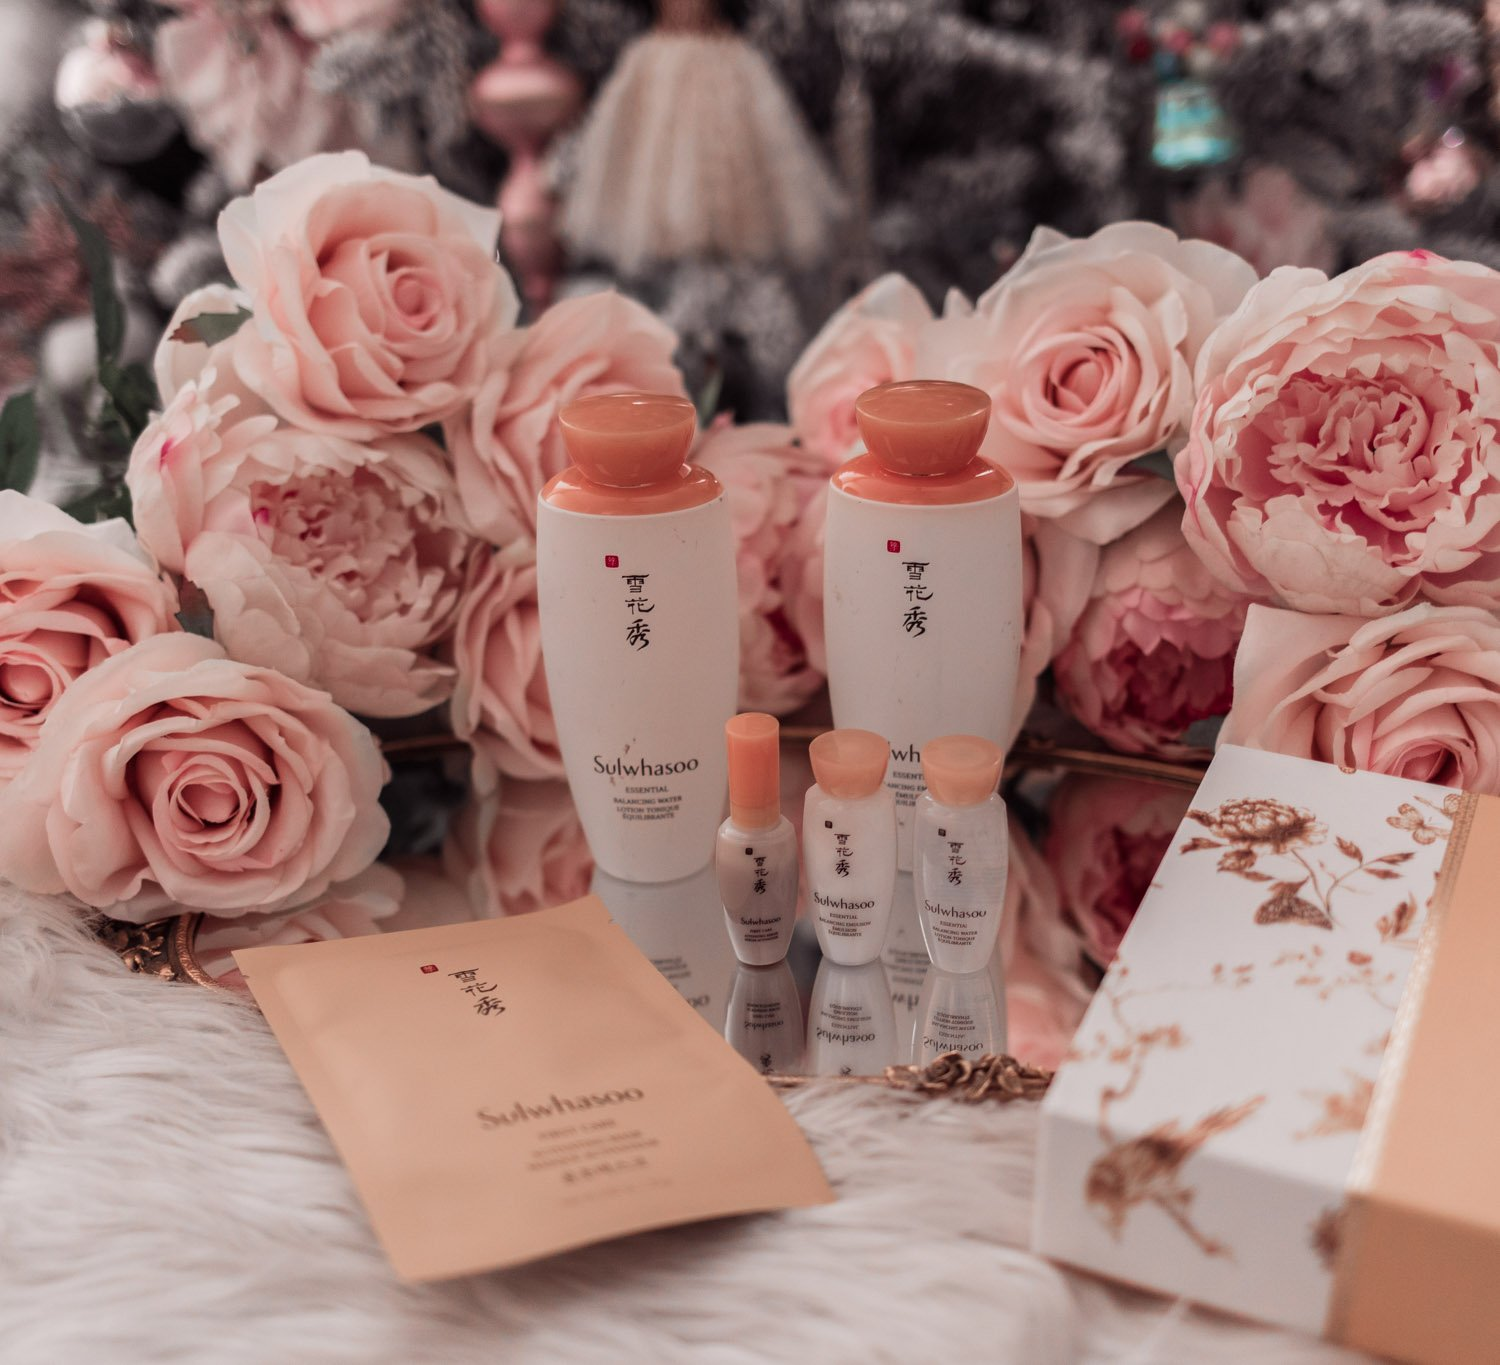 Fashion Blogger Elizabeth Hugen of Lizzie in Lace shares holiday beauty gifts to gift yourself including this incredible Sulwhasoo Essentials Duo set